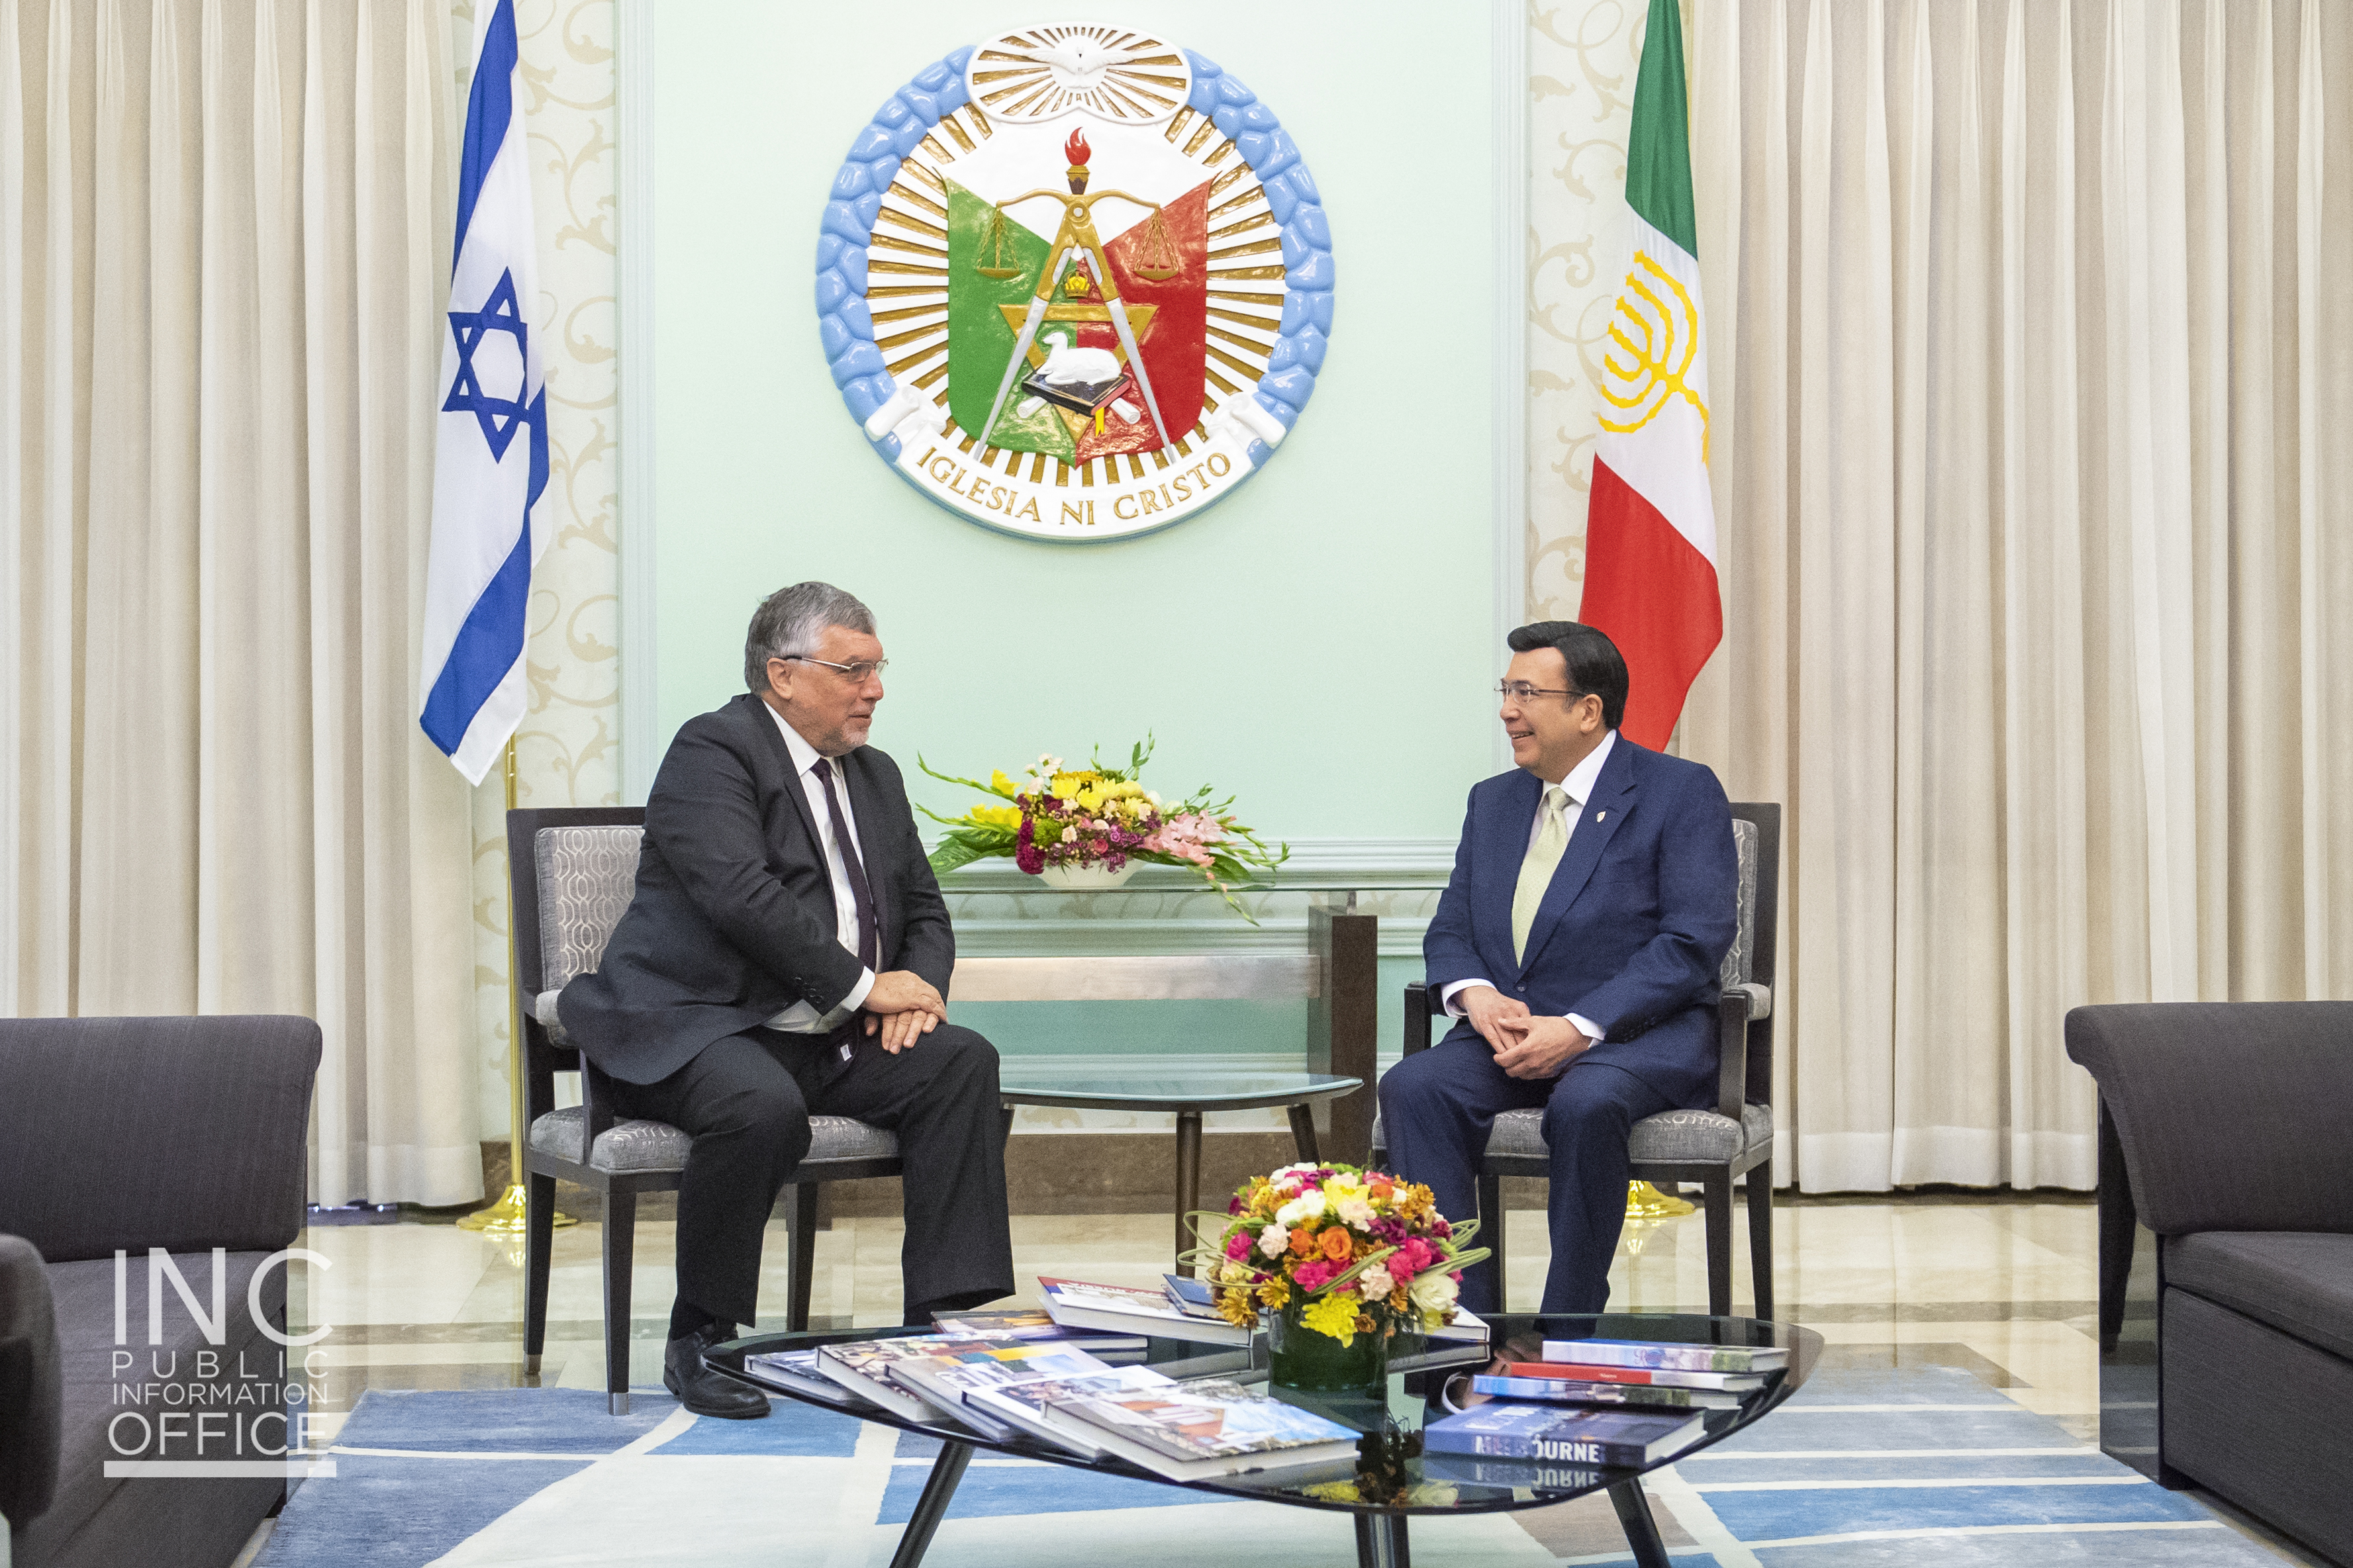 Israel ambassador reaffirms Israel's friendship with the INC in 2nd courtesy call to INC Executive Minister